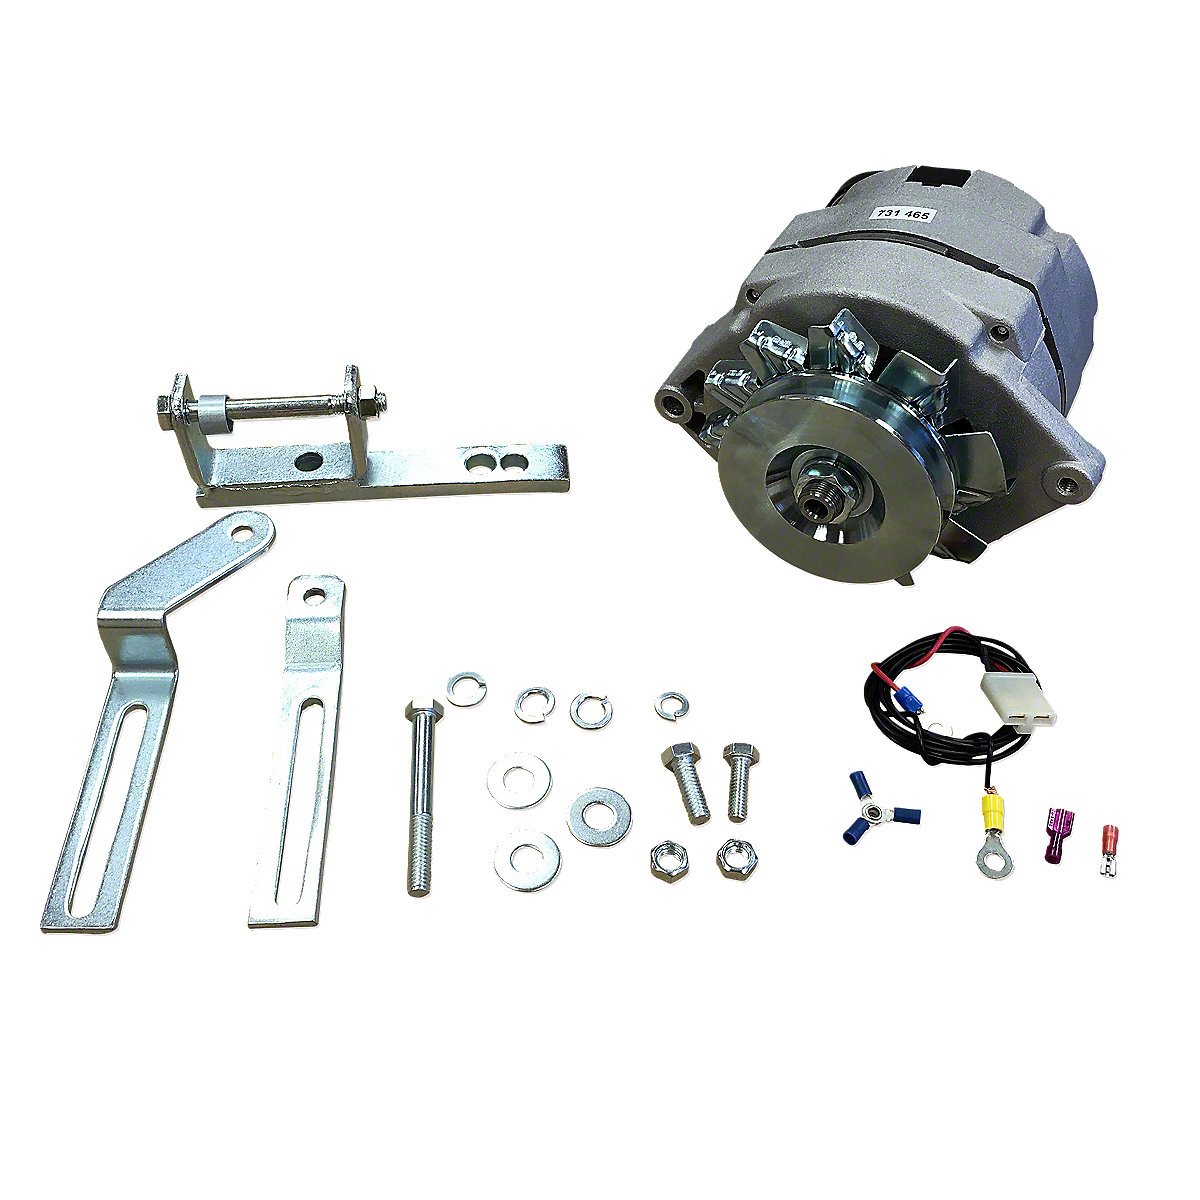 FDS3466 Alternator Conversion Kit for Negative Ground Systems